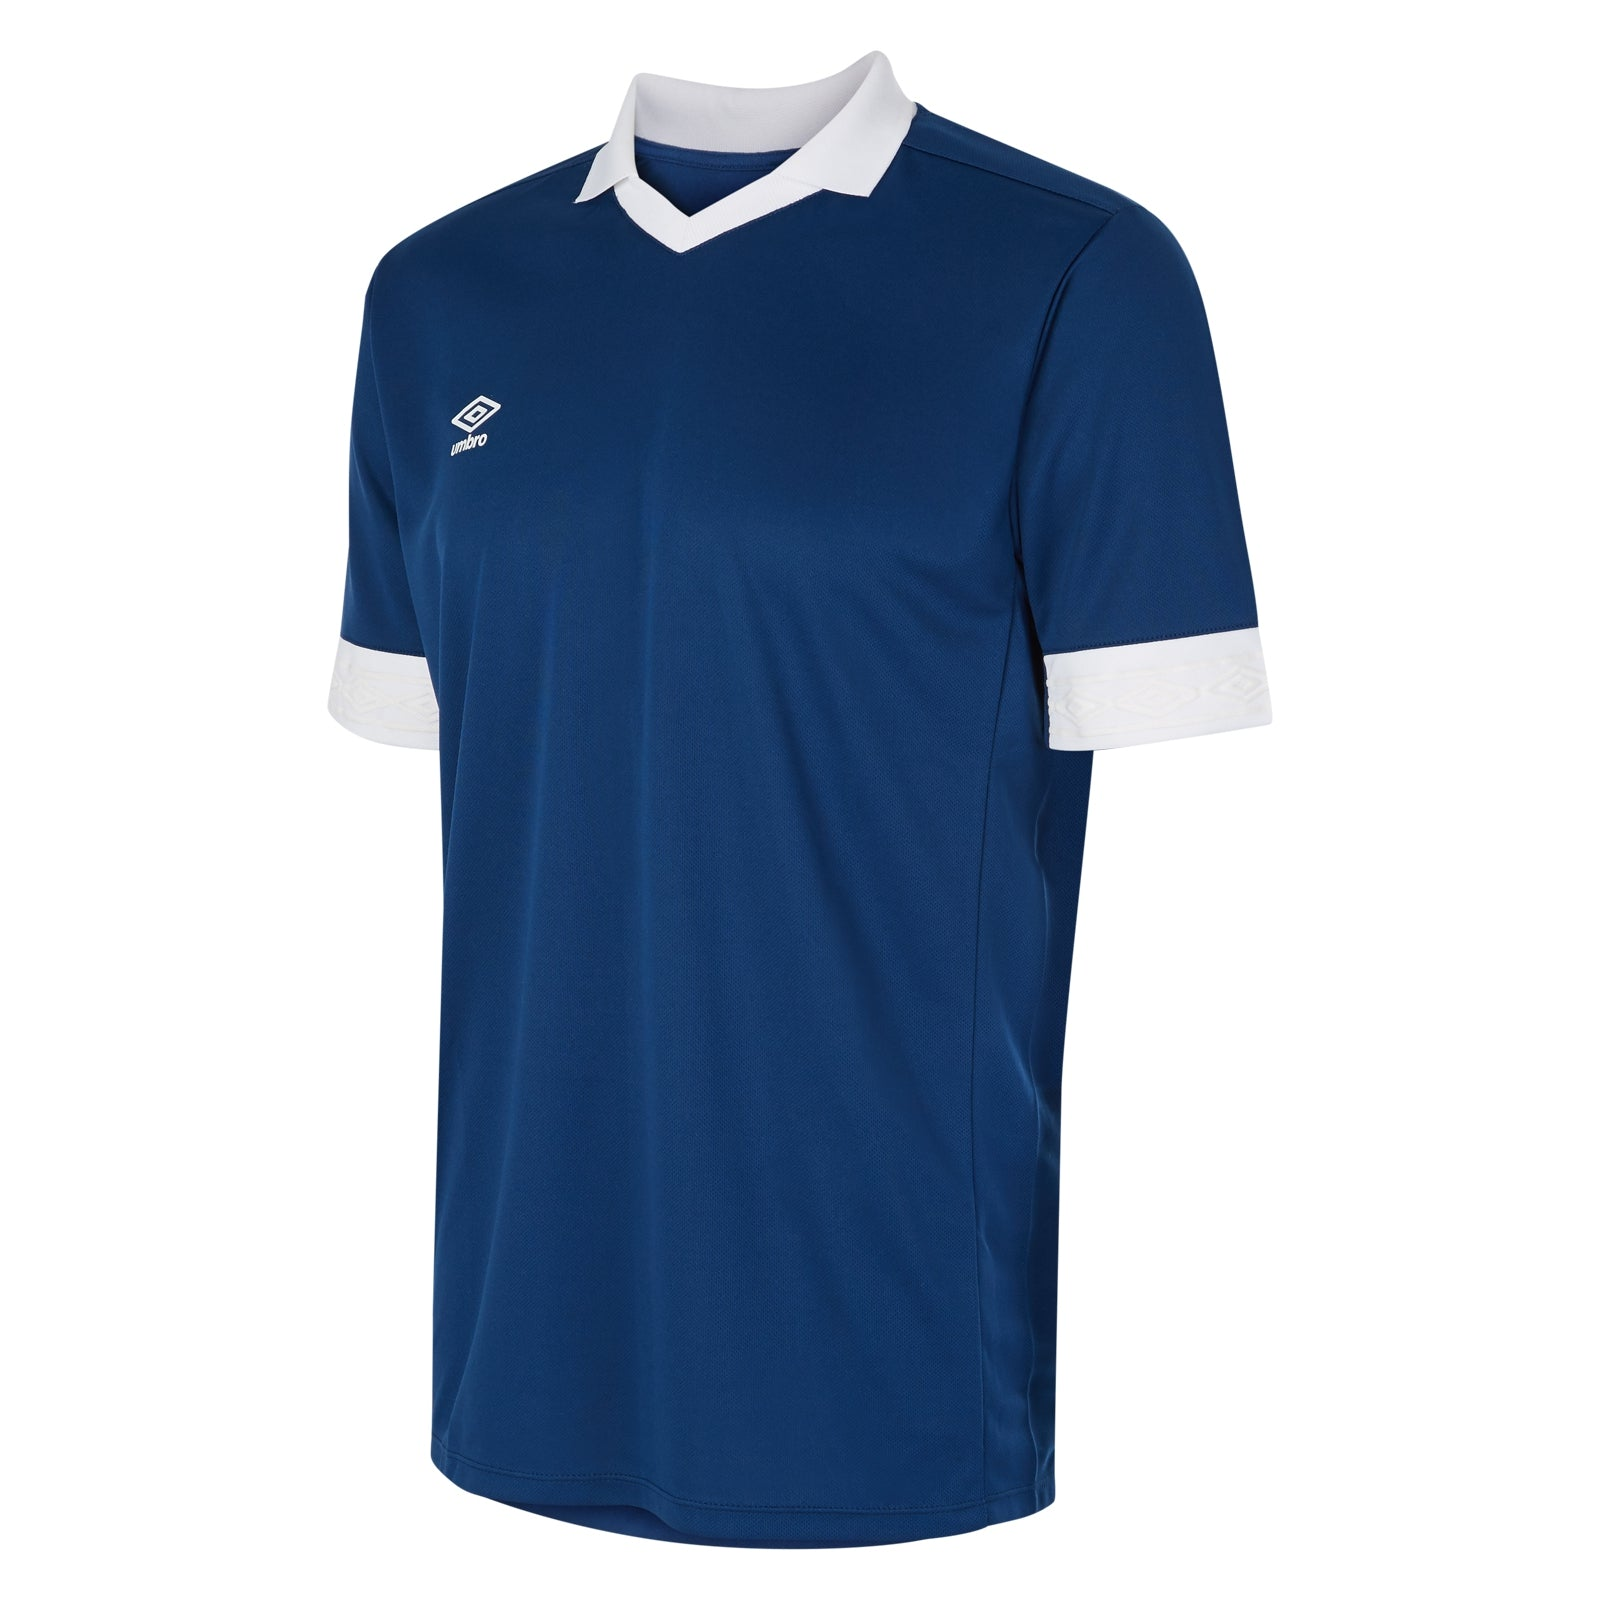 Umbro Tempest jersey short sleeve in navy with contrast white collar and cuff